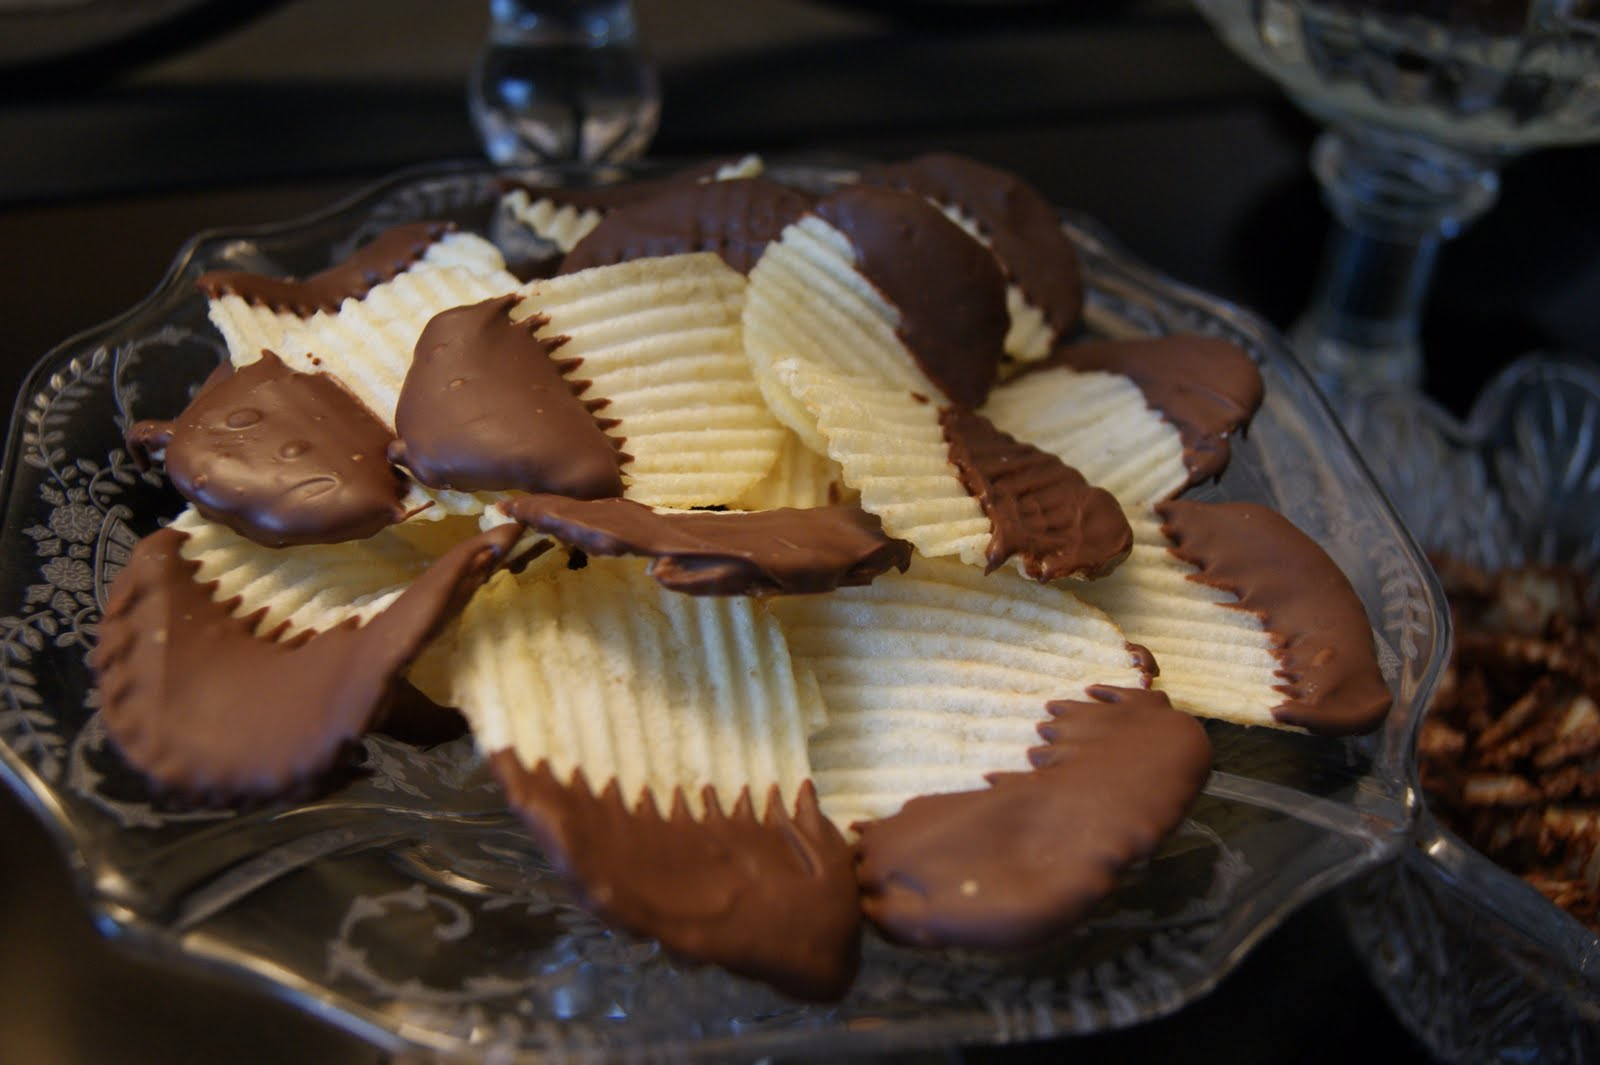 michelle paige blogs: Chocolate Dipped Potato Chips